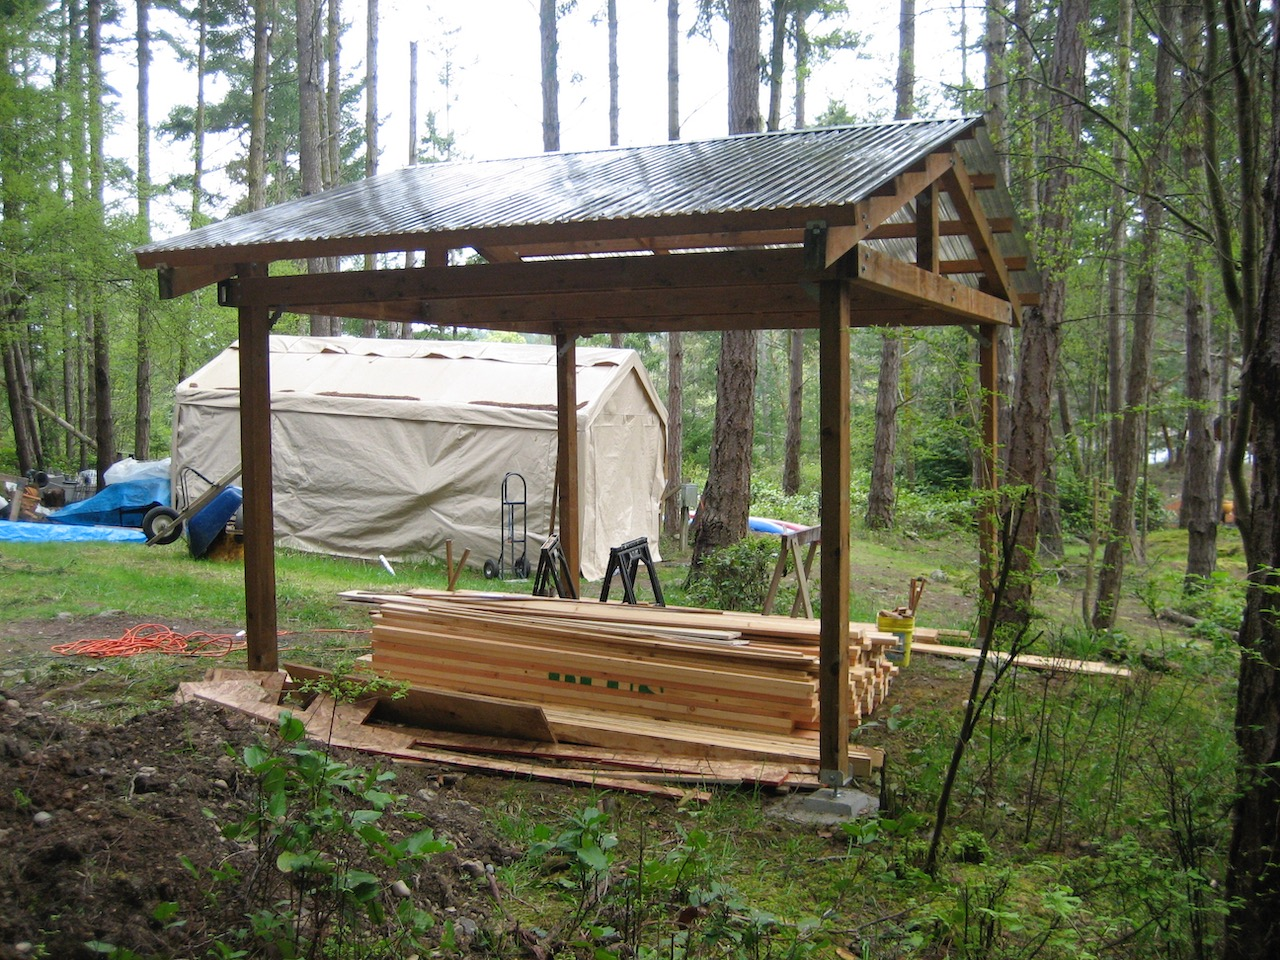 Raid shelter stores building materials during shed and patio building projects